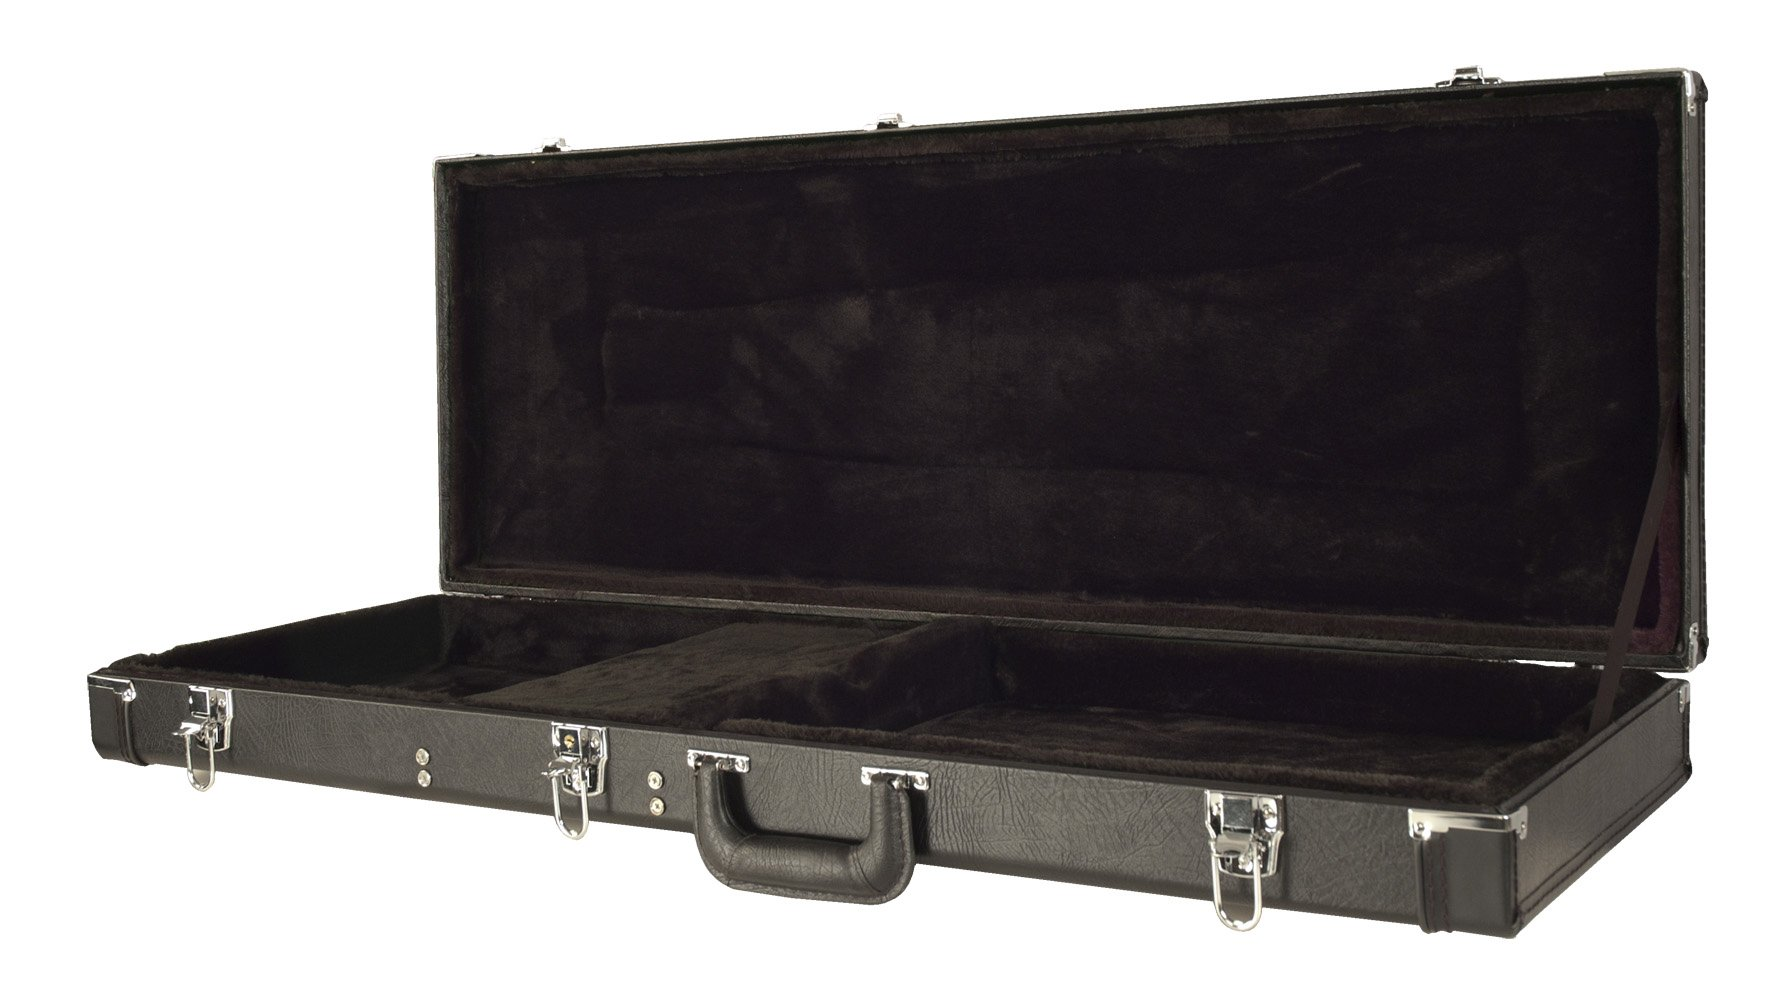 Guardian CG-022-B Deluxe Hardshell Case, Electric Bass